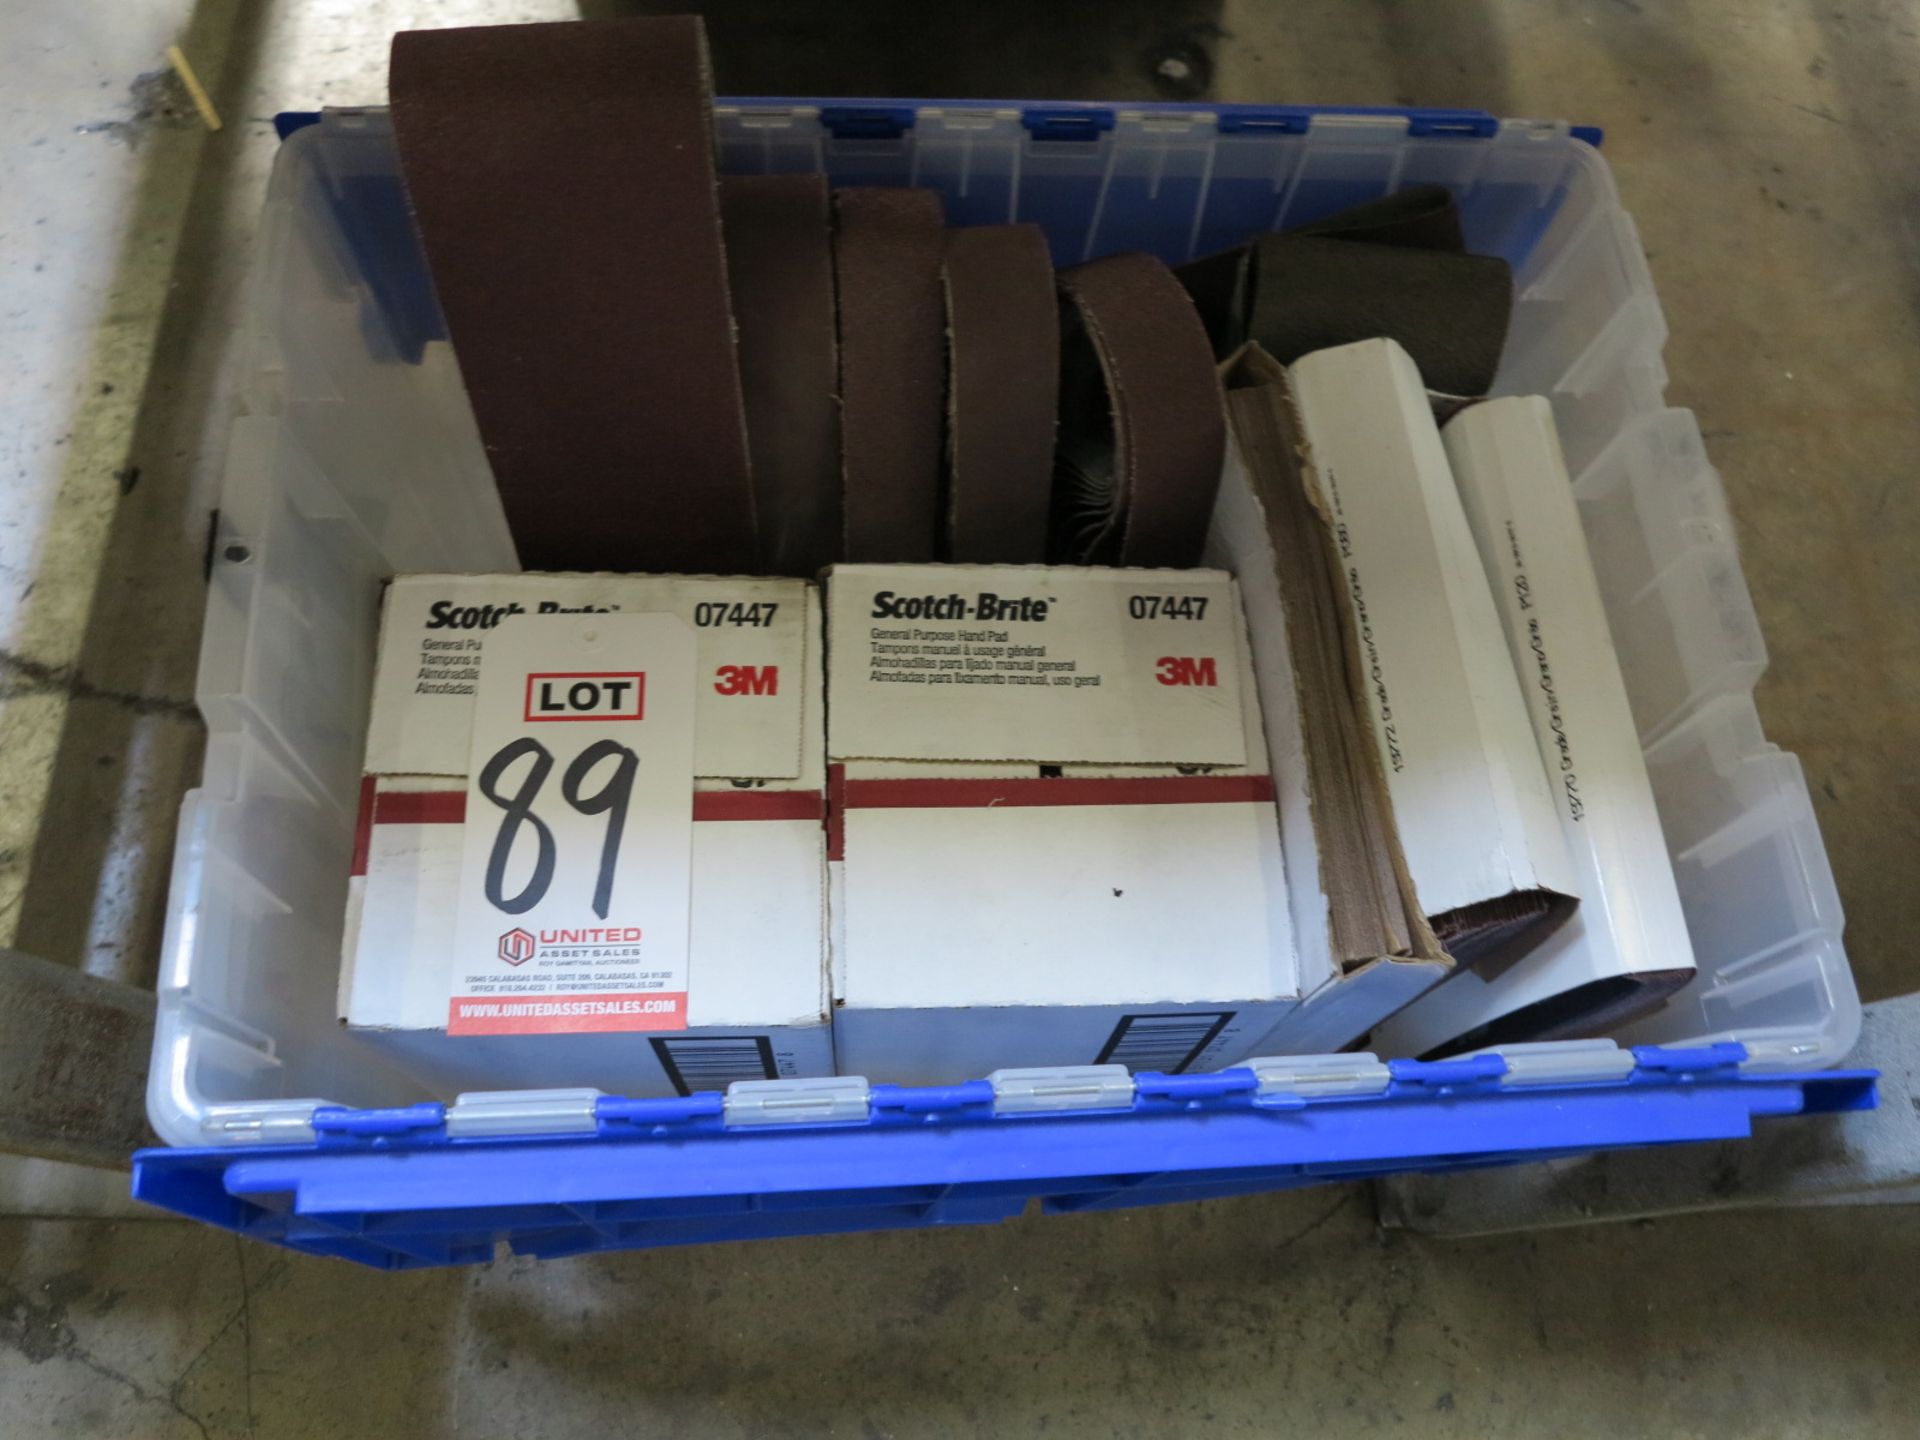 Lot 89 - LOT - TOTE OF SANDING BELTS, SCOTCH-BRITE AND MISC SAND PAPER